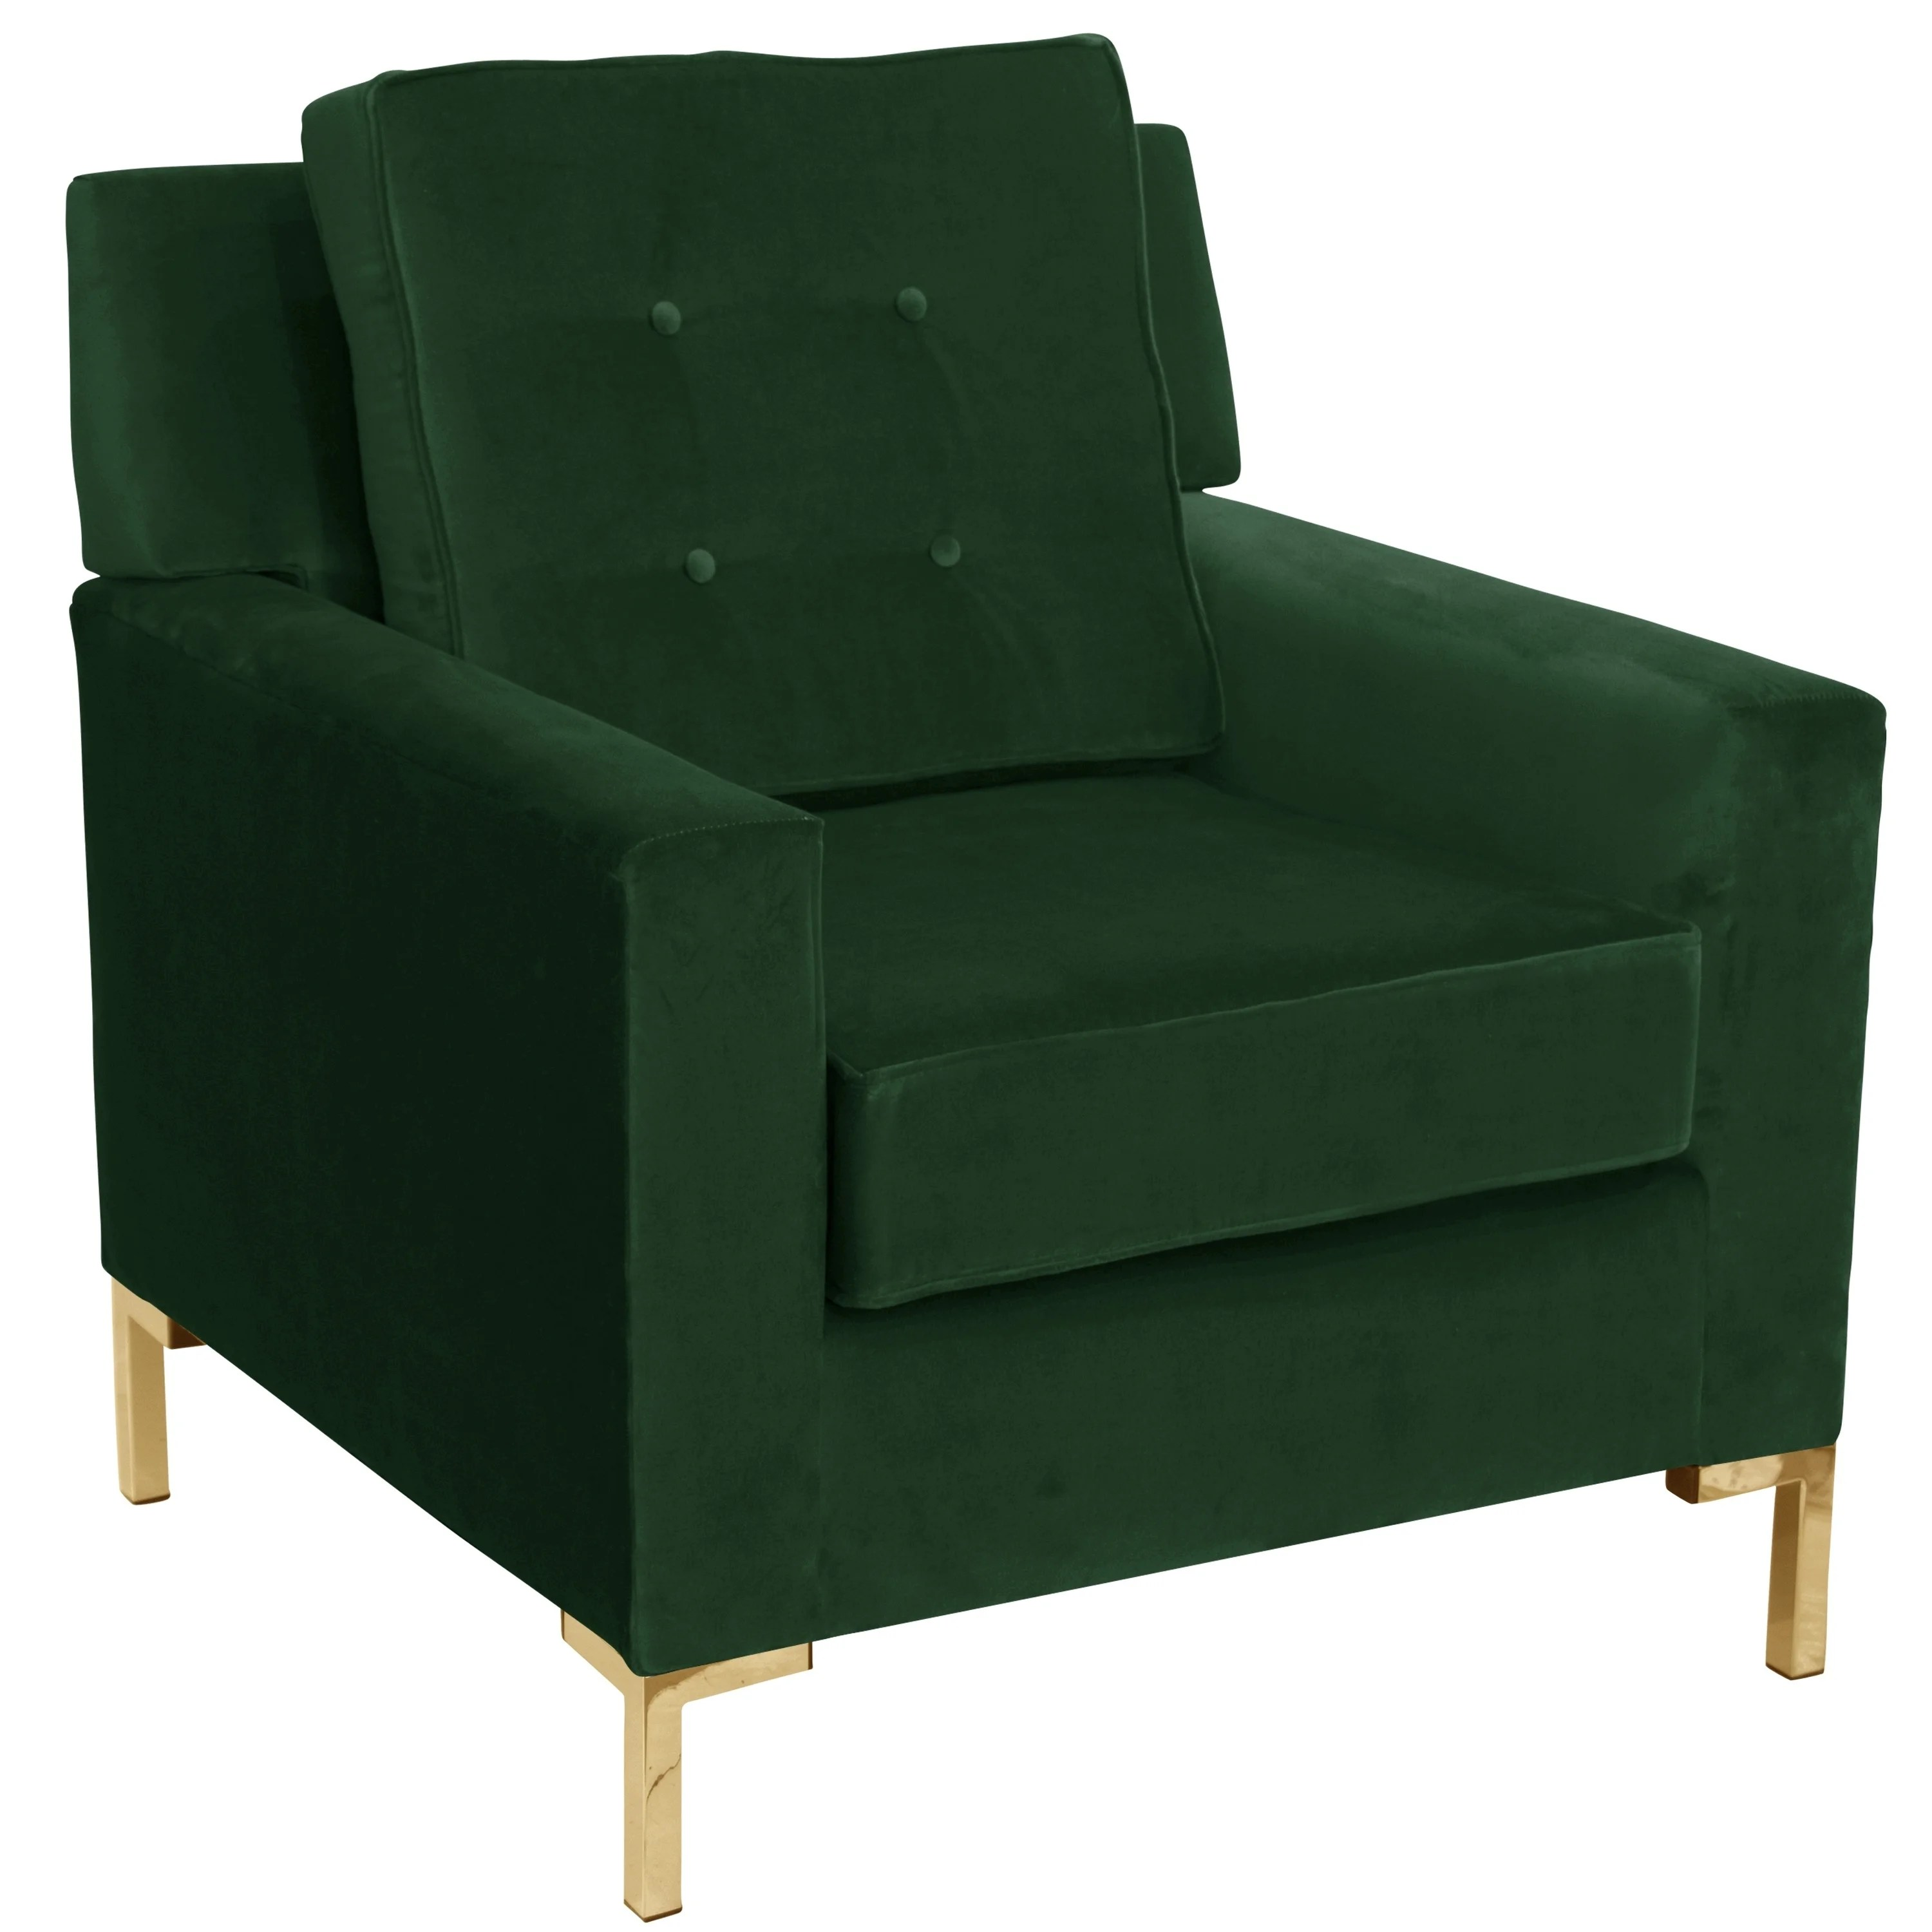 Emerald Green Accent Chair Skyline Furniture Accent Chair In Fauxmo Emerald